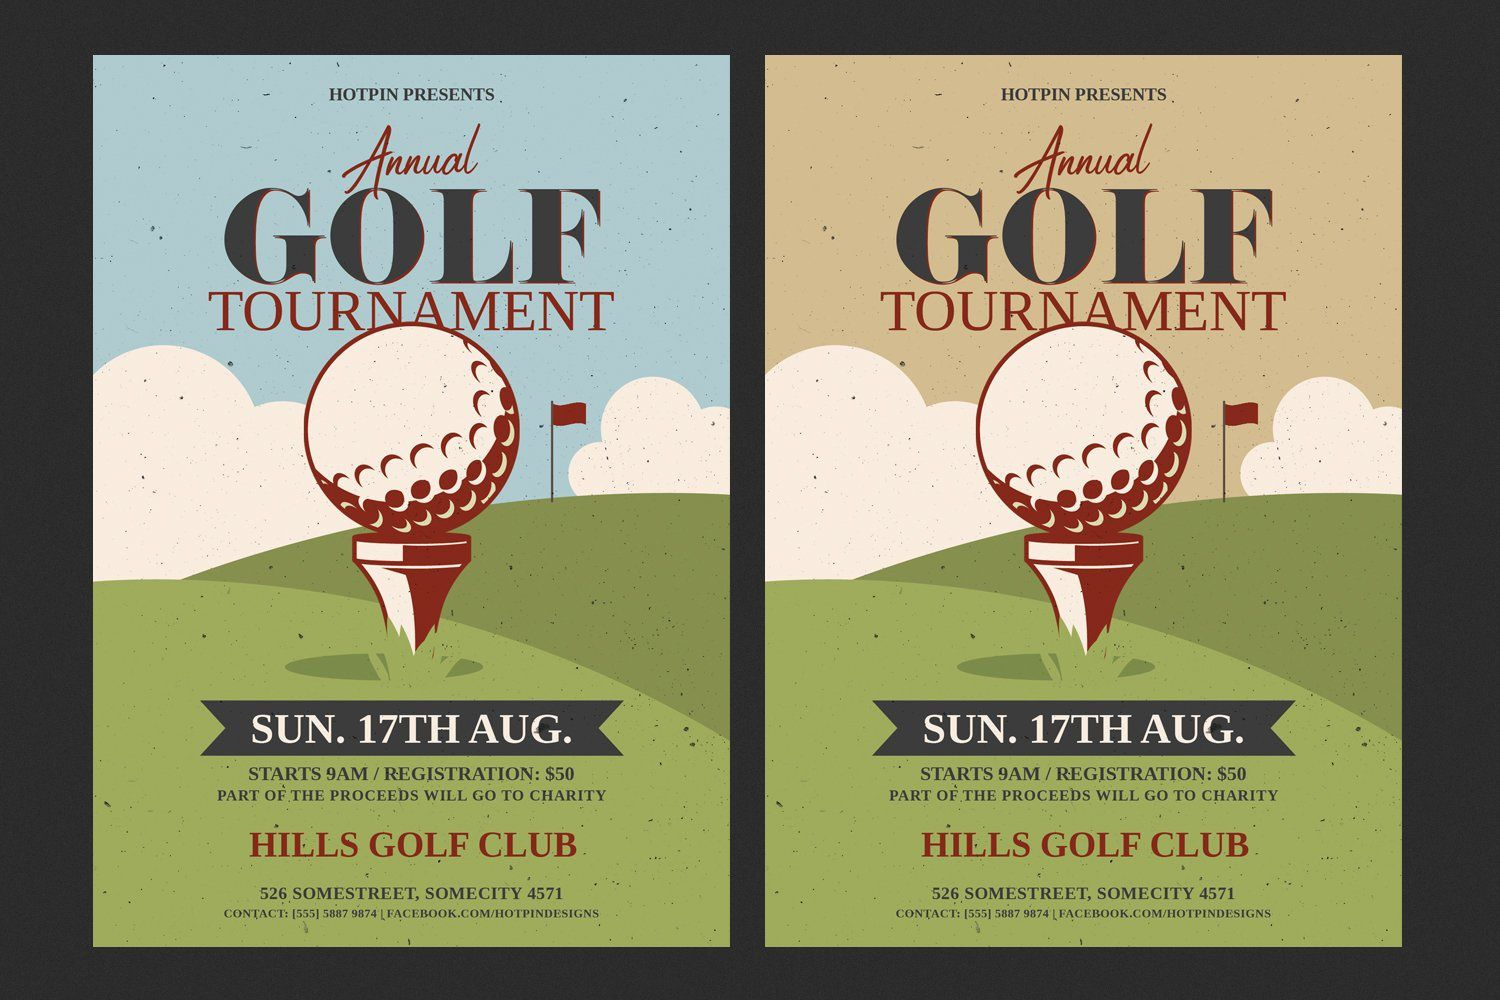 002 Surprising Free Charity Golf Tournament Flyer Template Example Full